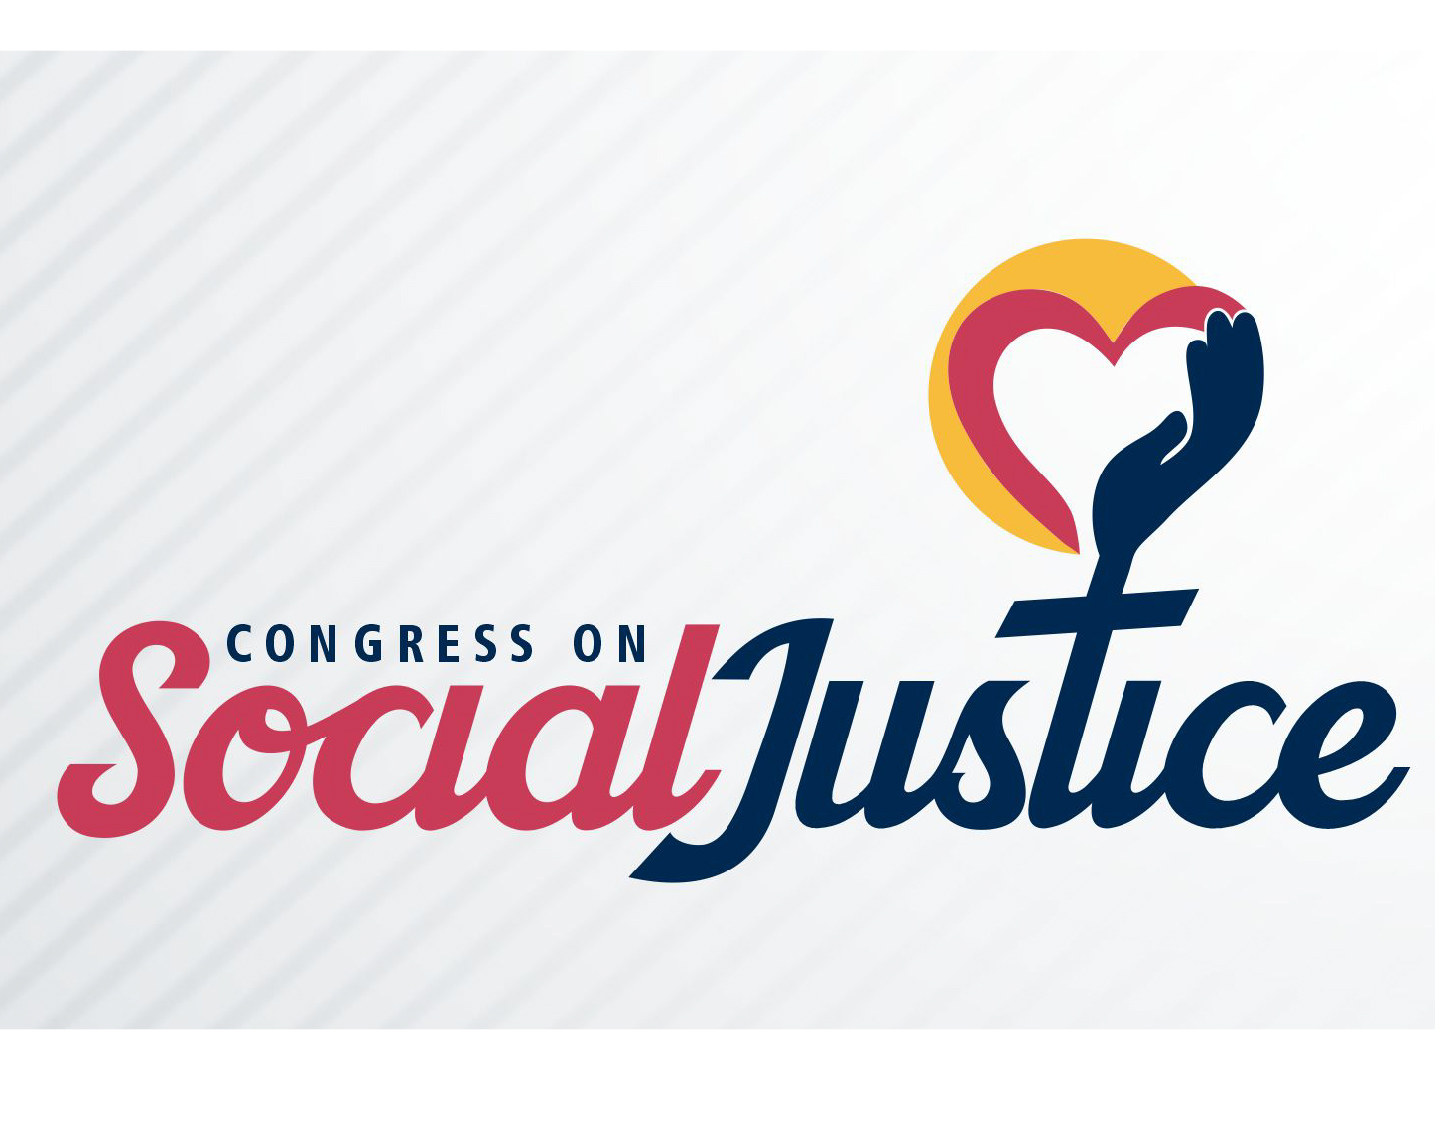 Andrews Congress on Social Justice 2021